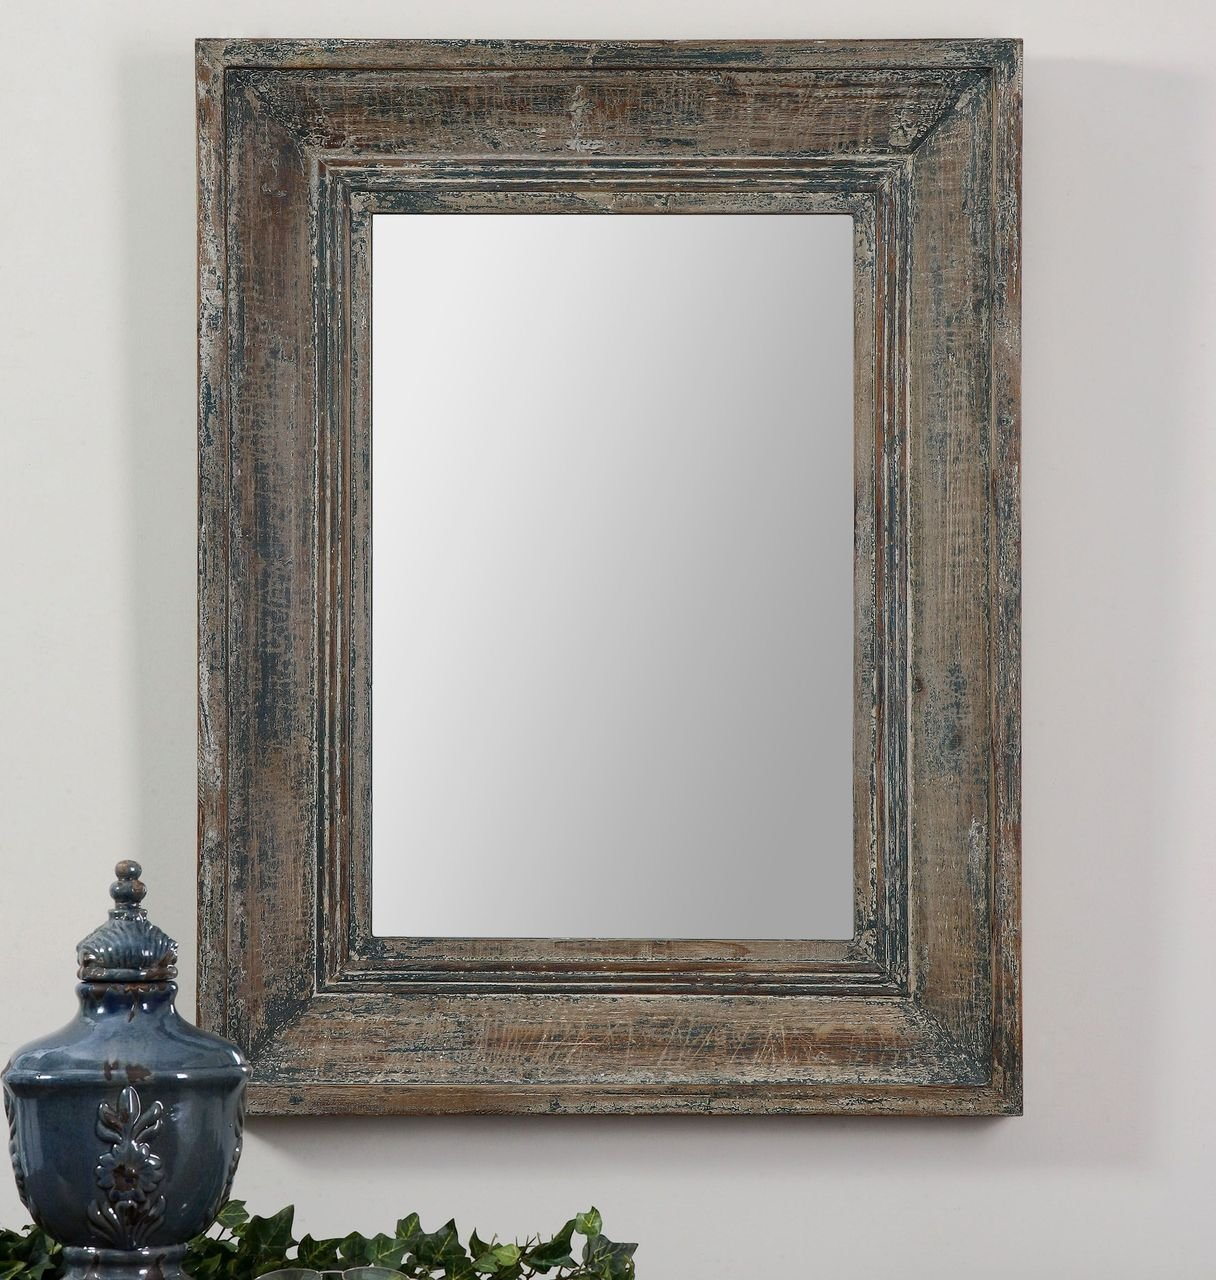 Reclaimed Wood Mirror | Wood Frame Wall Mirror | Sun Mirror Wall Decor